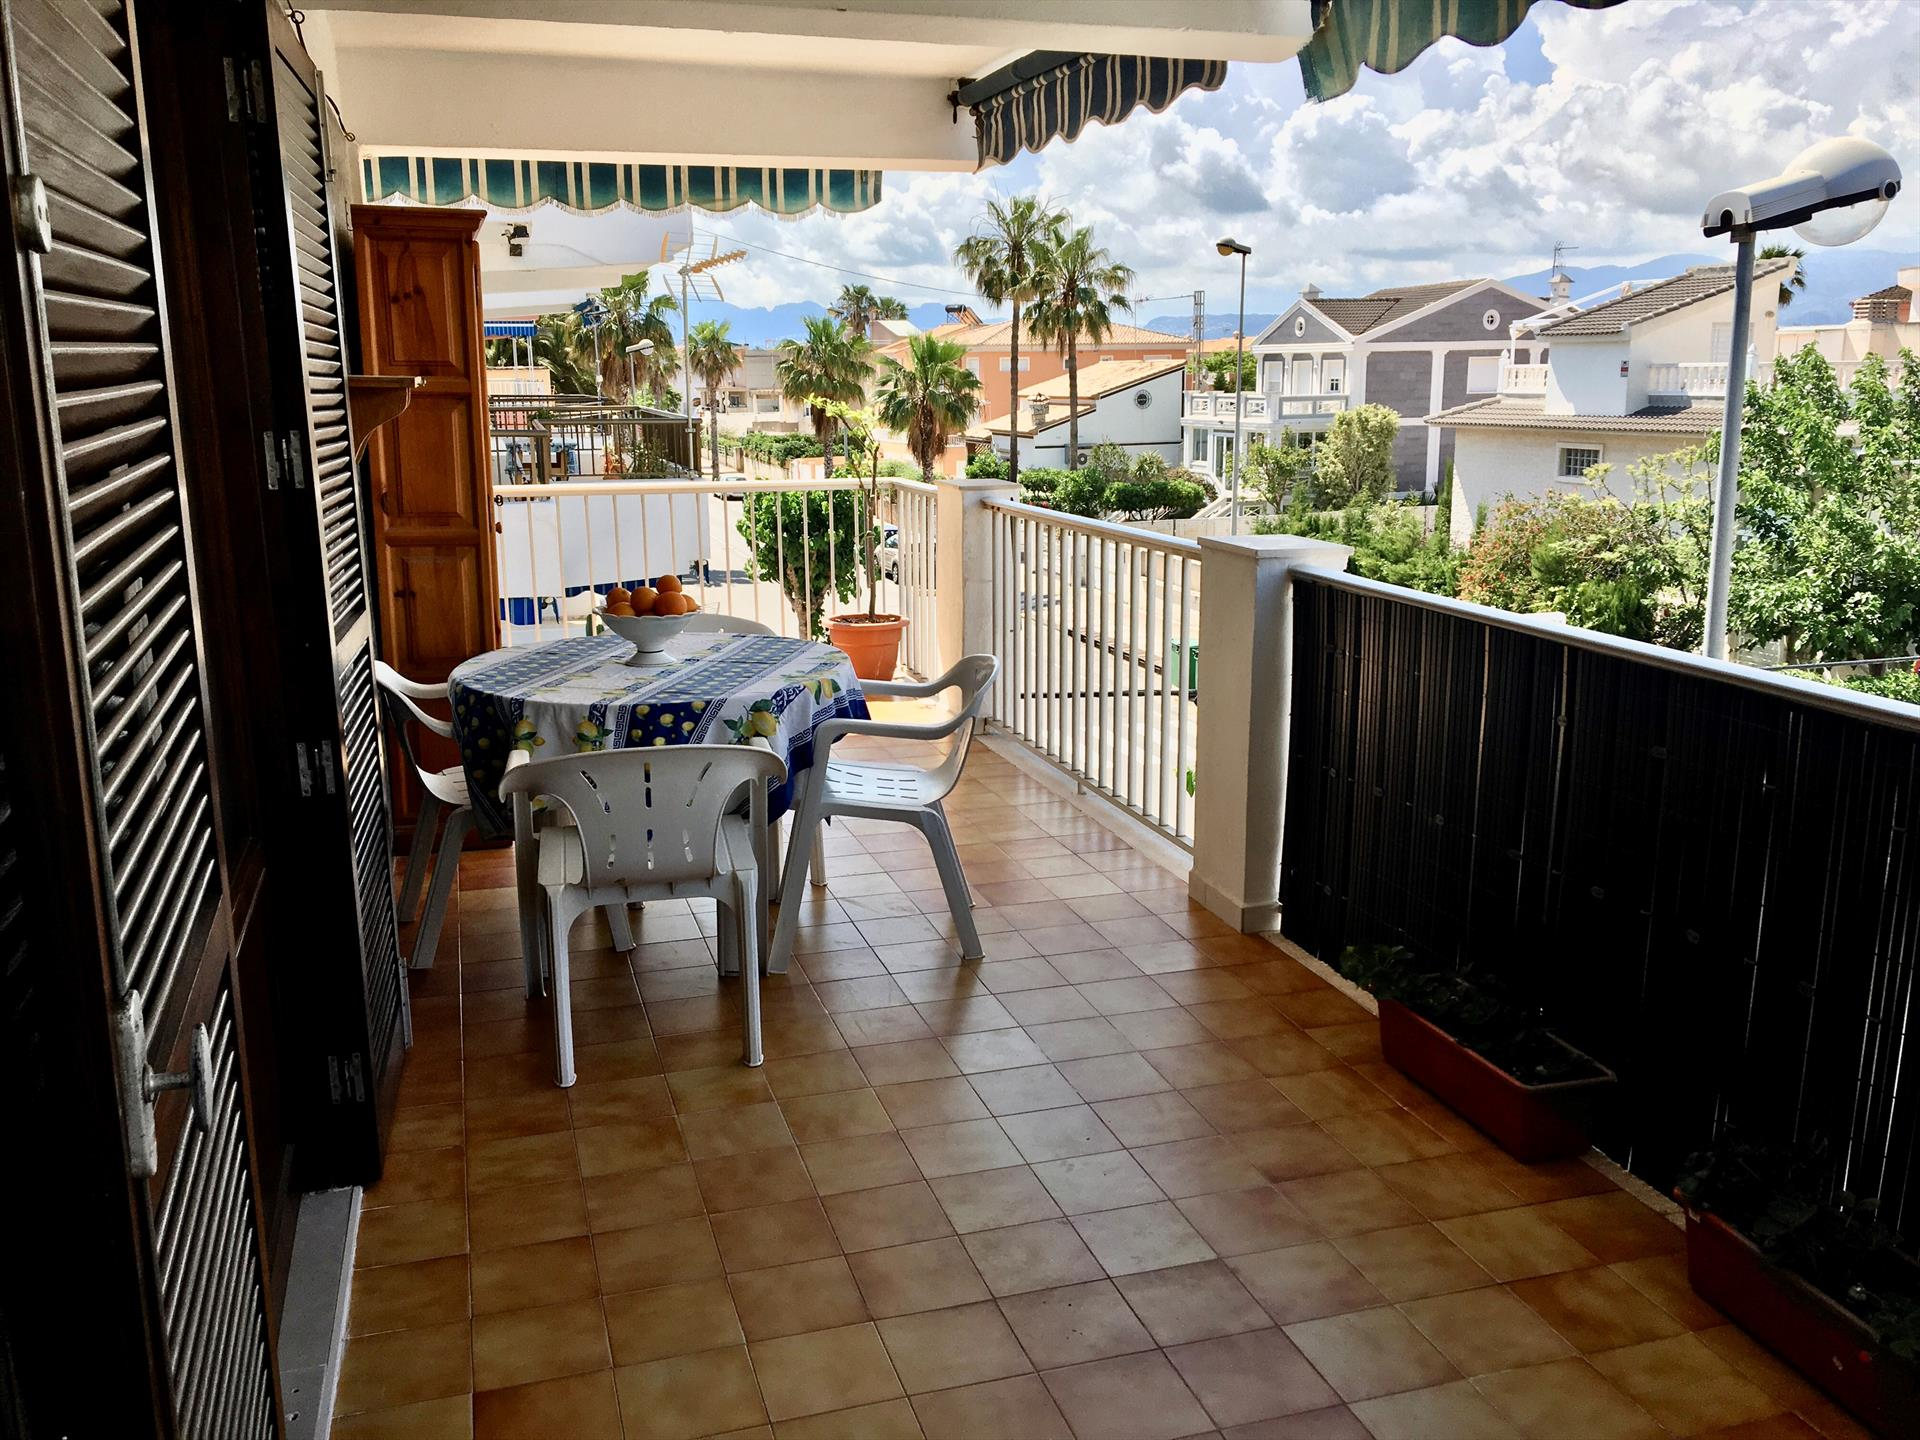 AP475 Via de Ronda Pau Pi,Rustic and comfortable apartment in Oliva, on the Costa Blanca, Spain for 5 persons.....